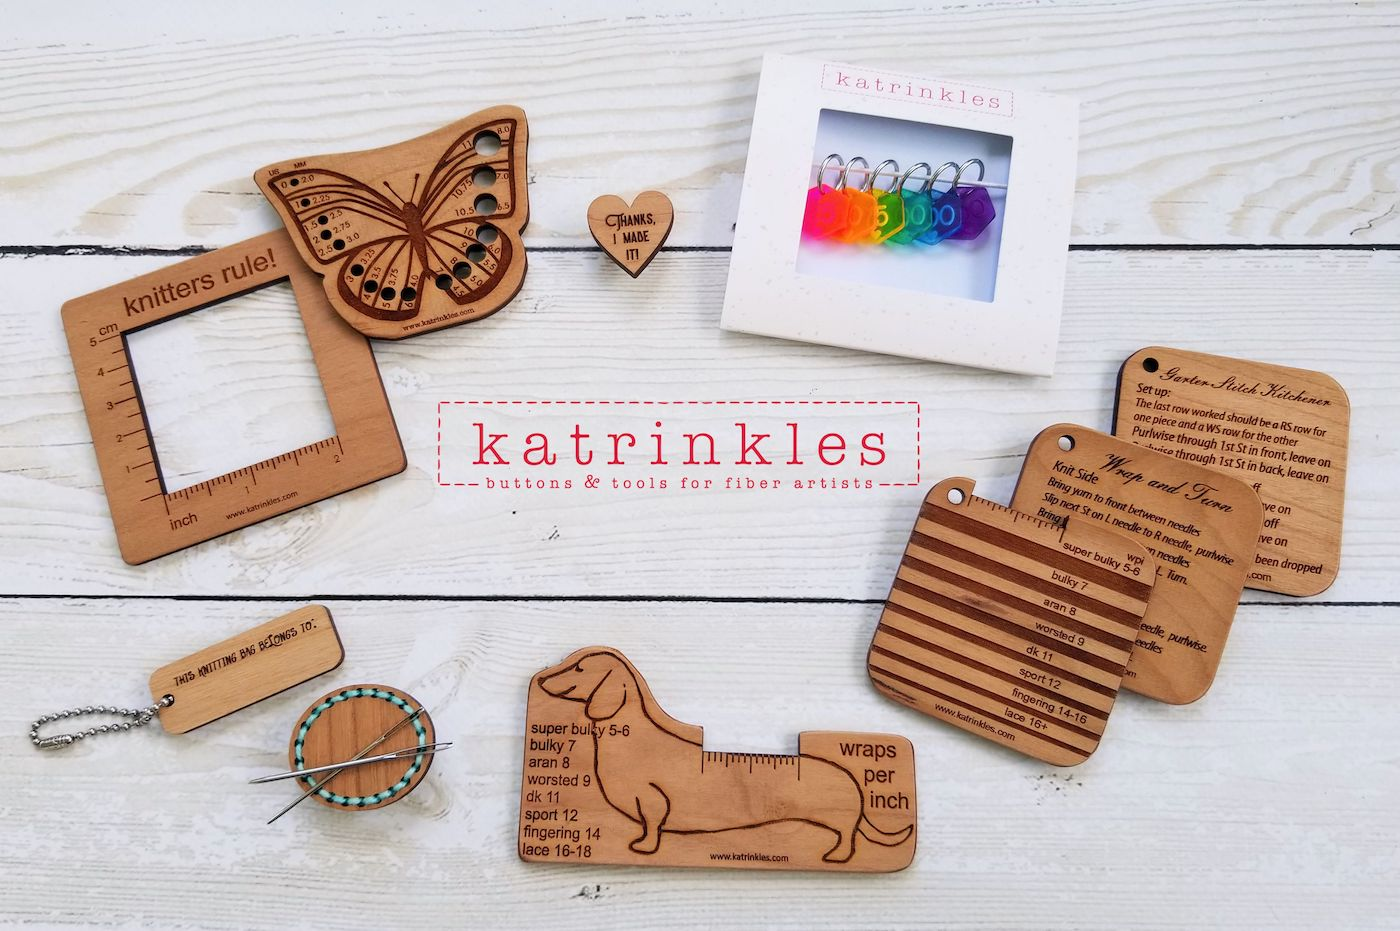 Katrinkles logo and accessories